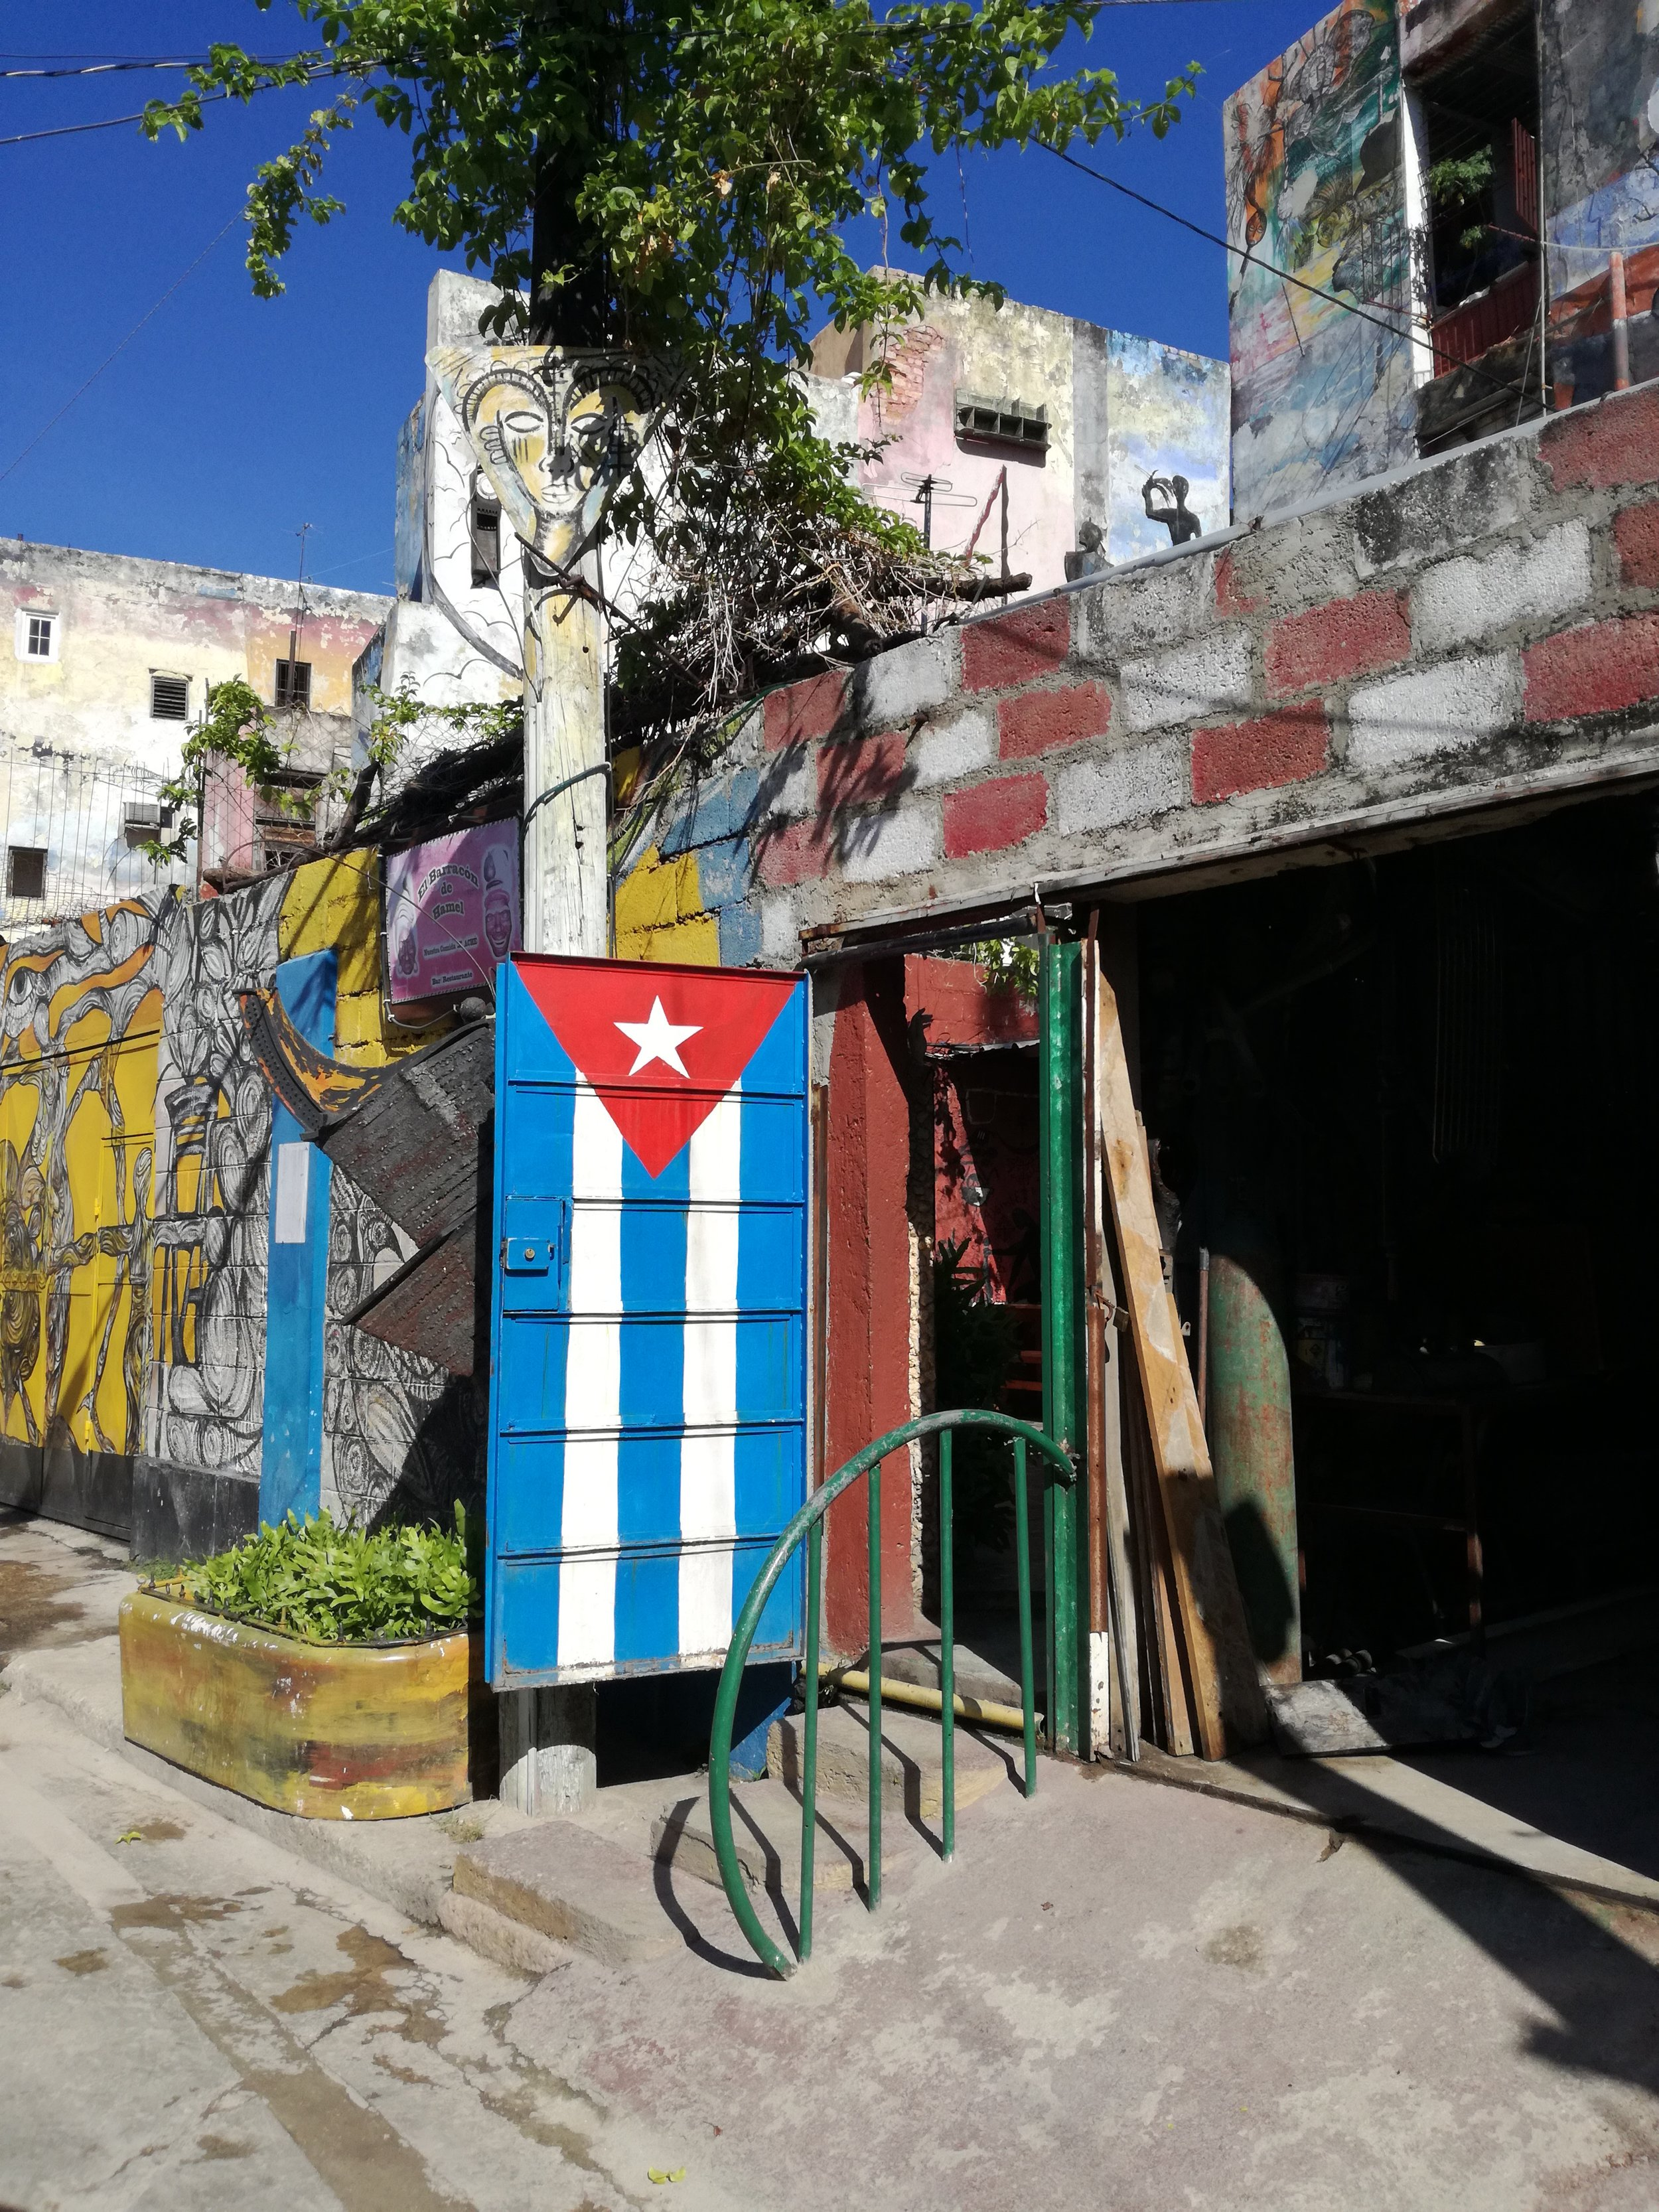 Cuba is full of such amazing art. On most building walls, you will find creative expressions, often with patriotic messages. This was at Callejon de Hamel.